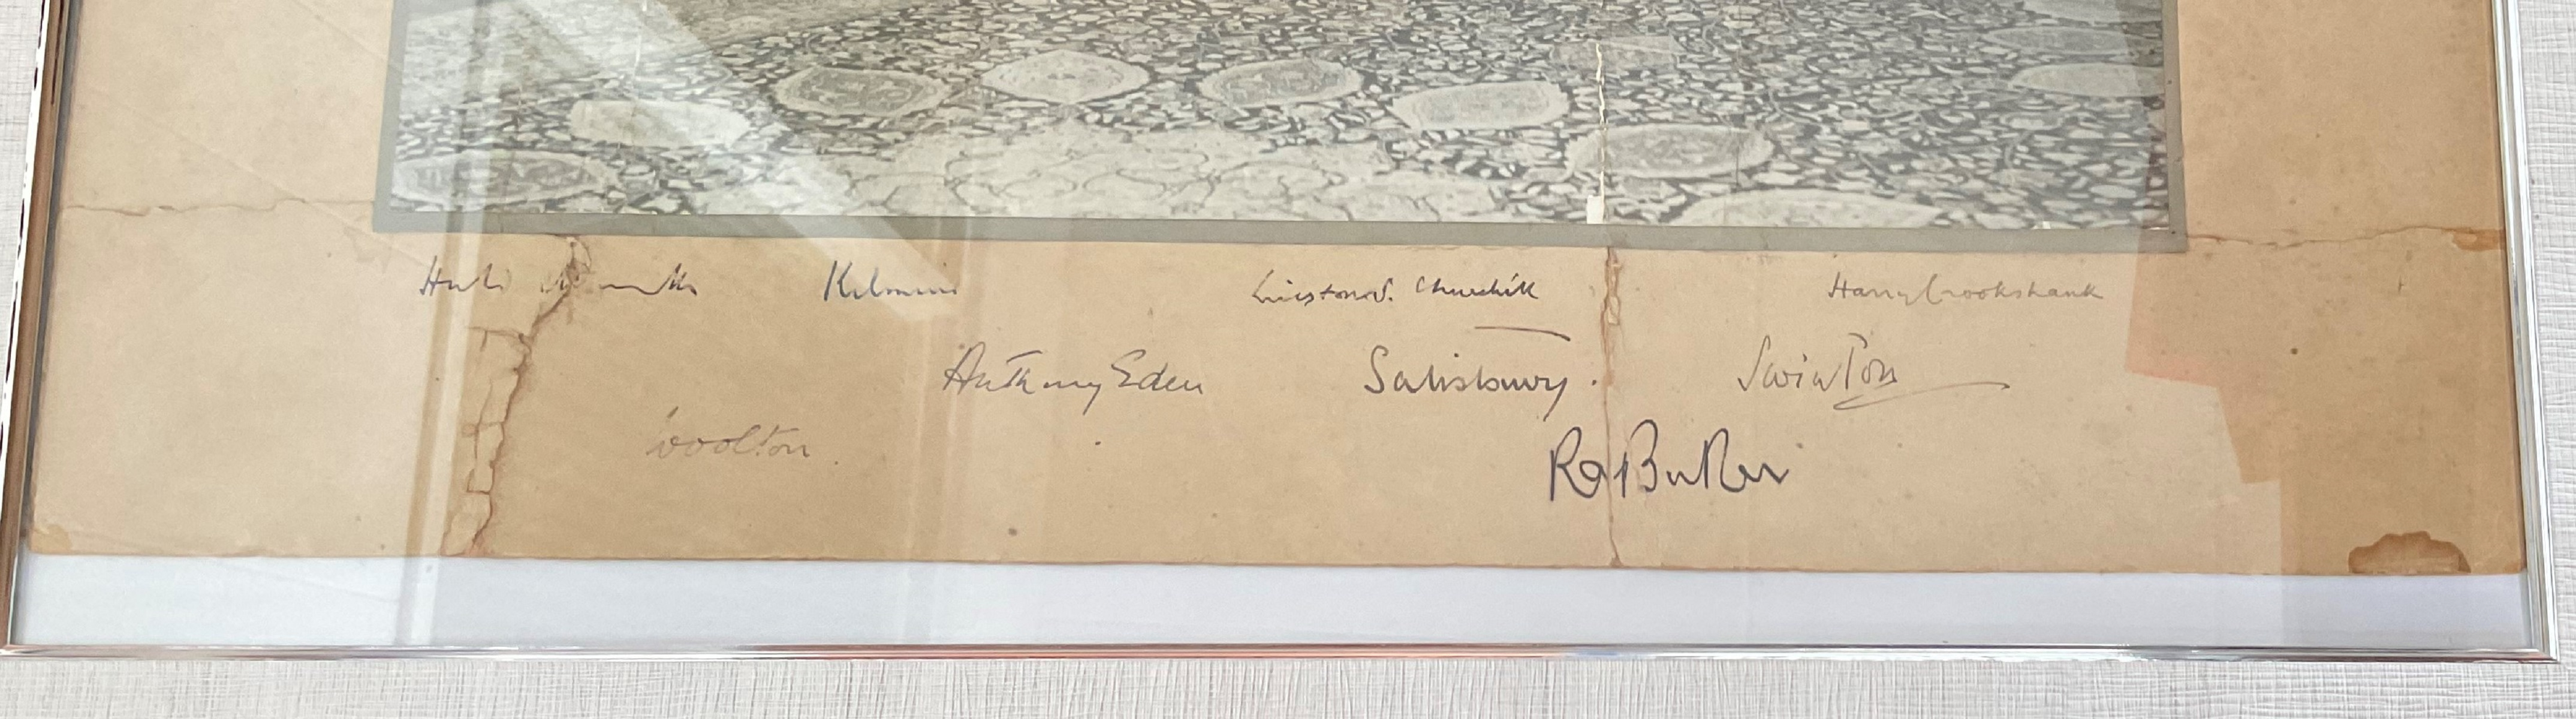 Winston Churchill Cabinet multi signed 21x17 mounted and framed signature piece includes rare - Image 2 of 2